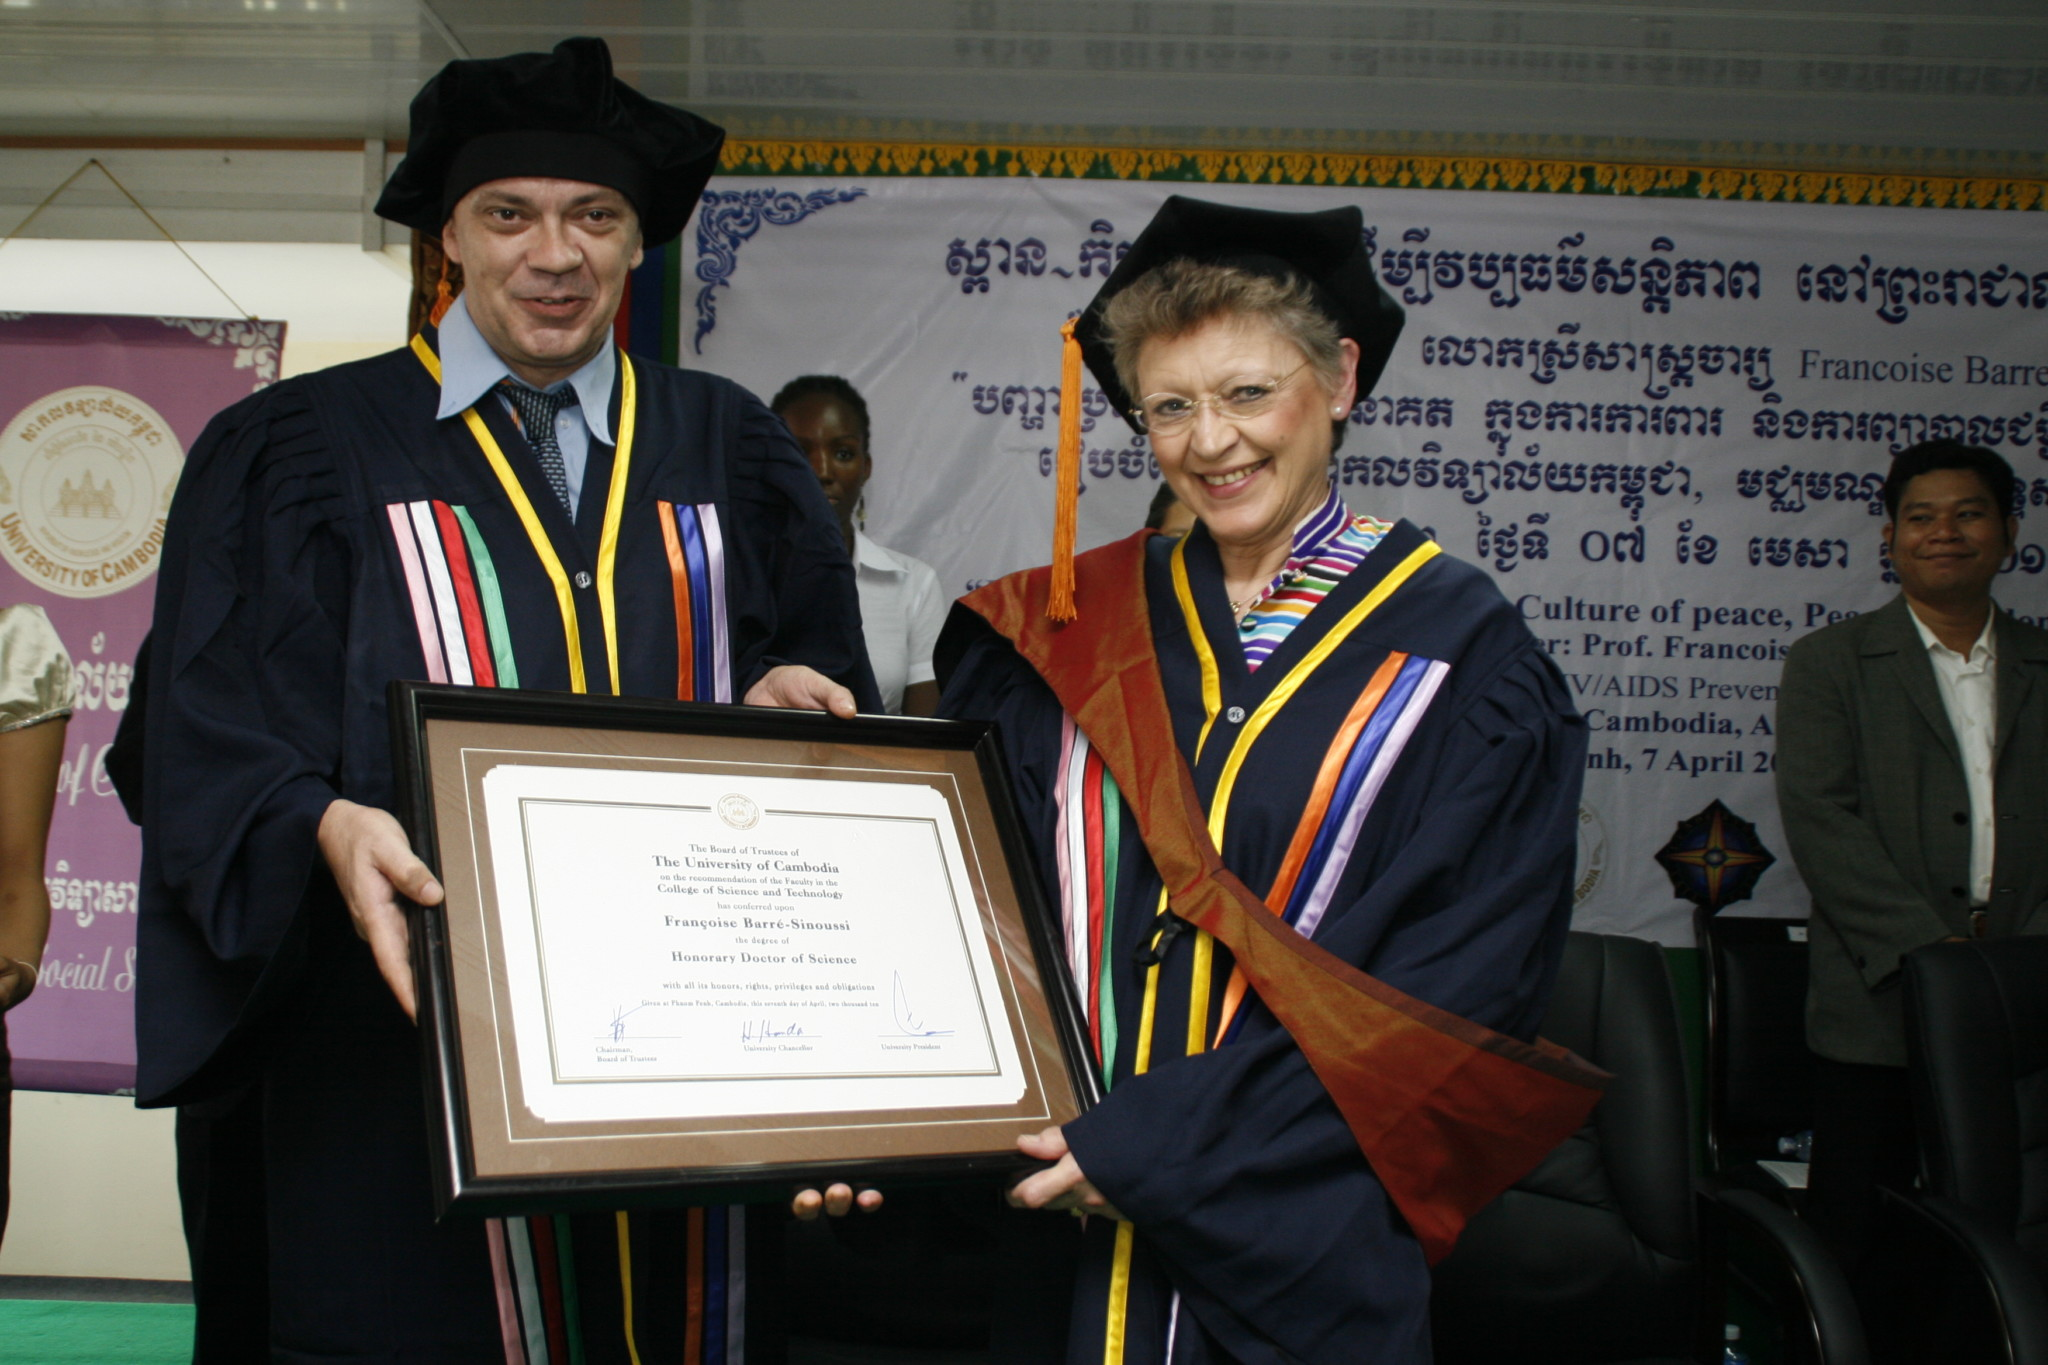 Medicine Nobel Laureate Prof. Francoise Barre-Sinoussi being awarded an Honorary Doctorate Degree in Phnom Penh